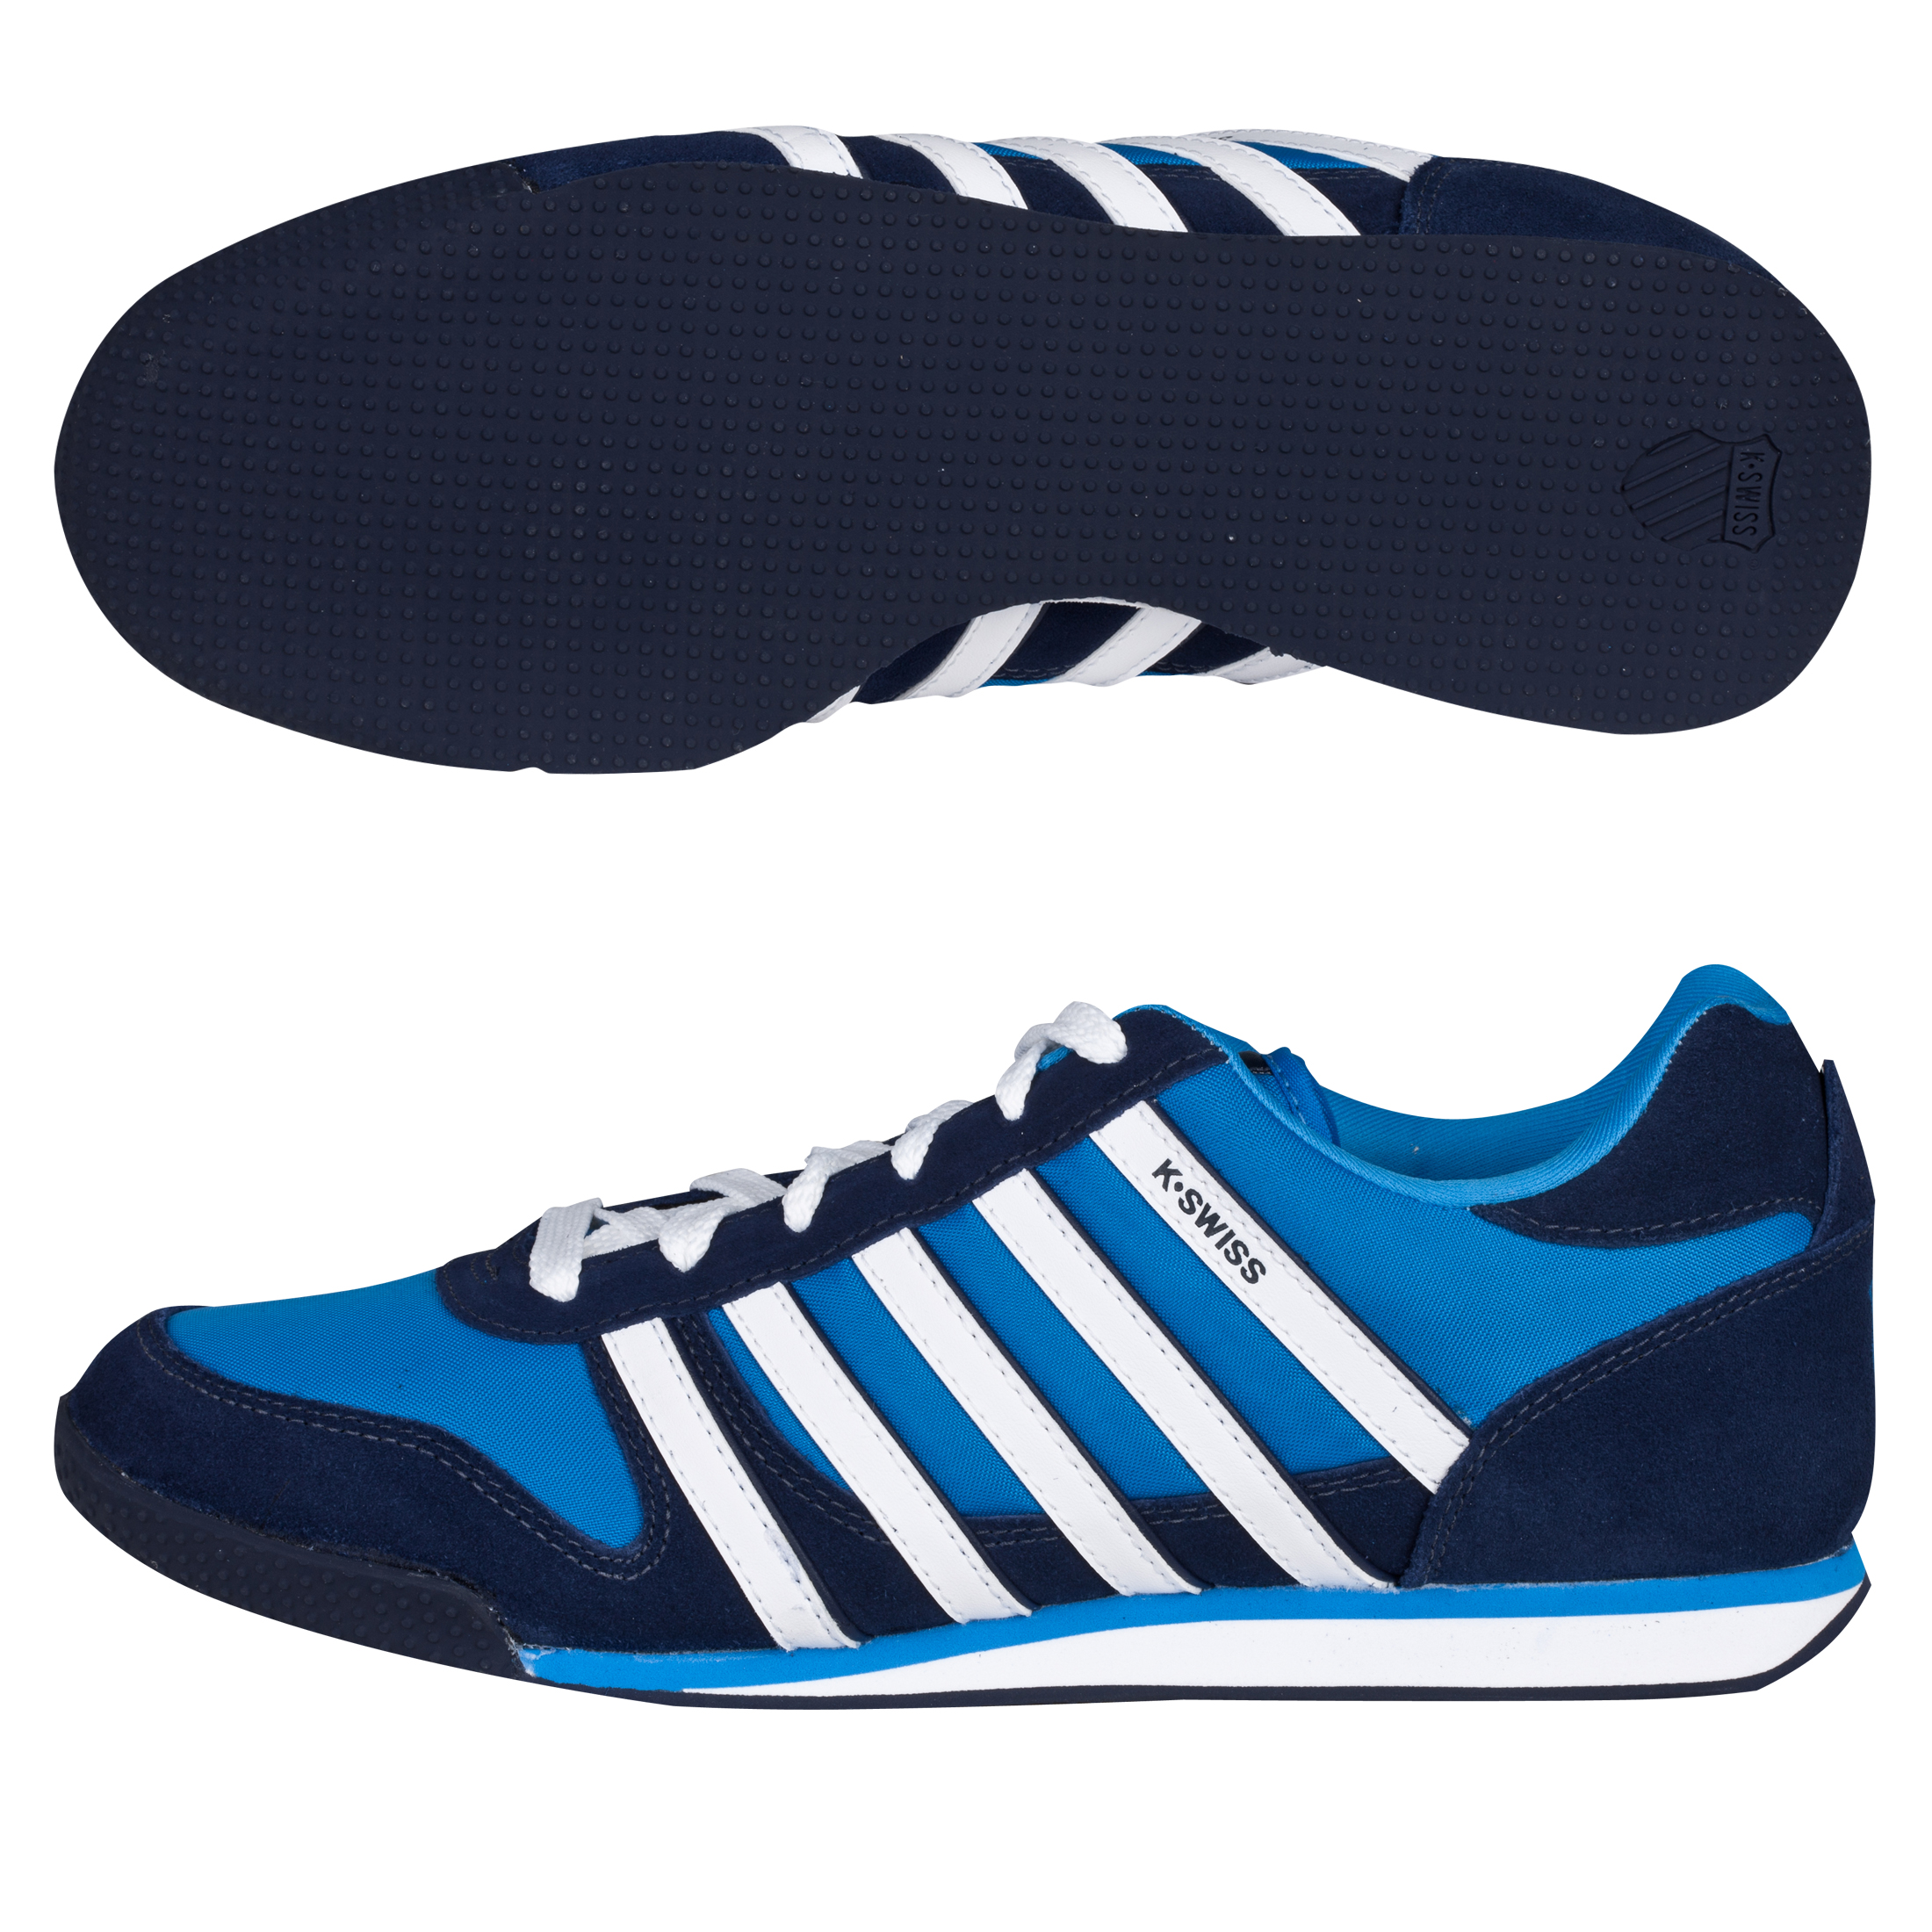 K-Swiss Whitburn SP Trainers - Brilliant Blue/Navy